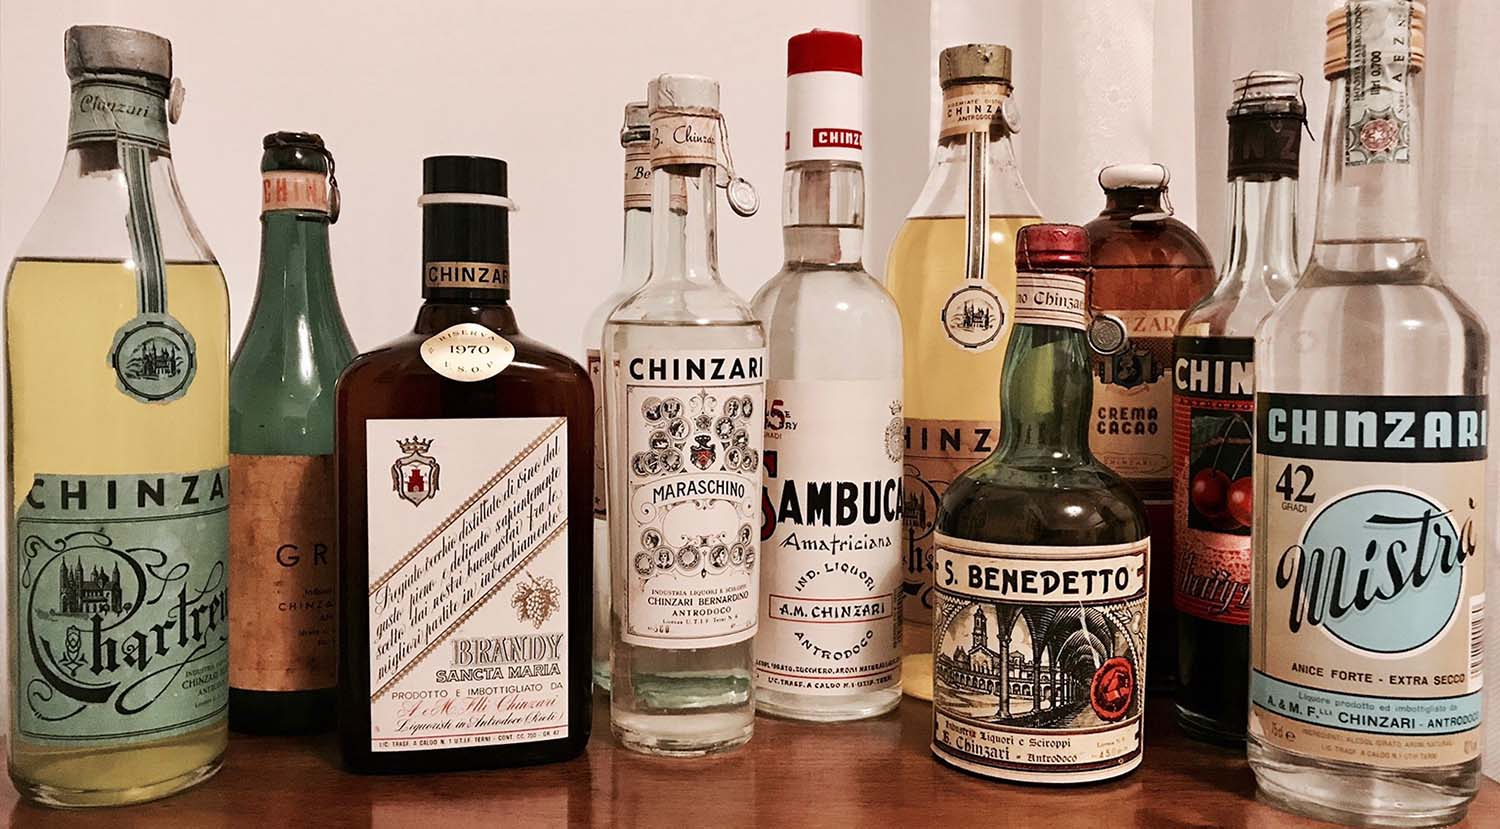 Bottles of Chinzari, Italian family business and producer of fine liqueurs.